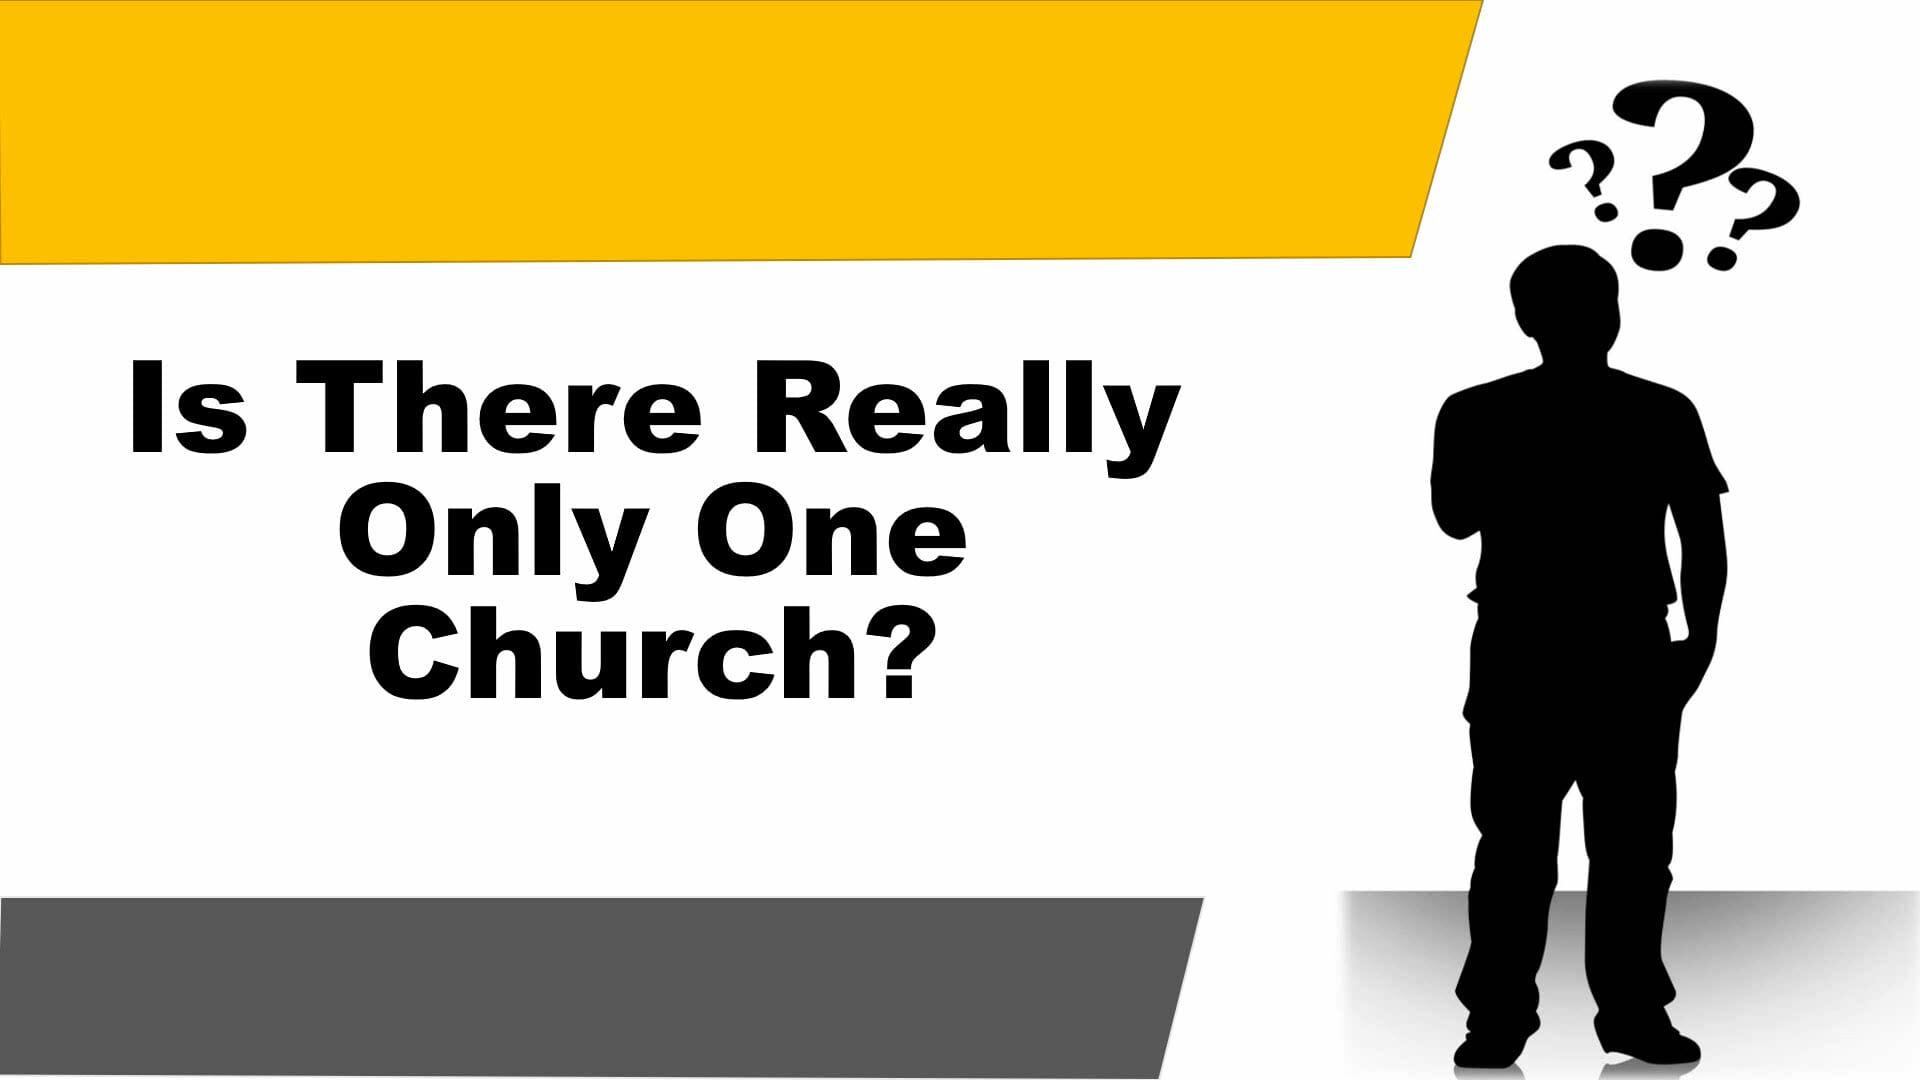 Is There Really Only One Church?